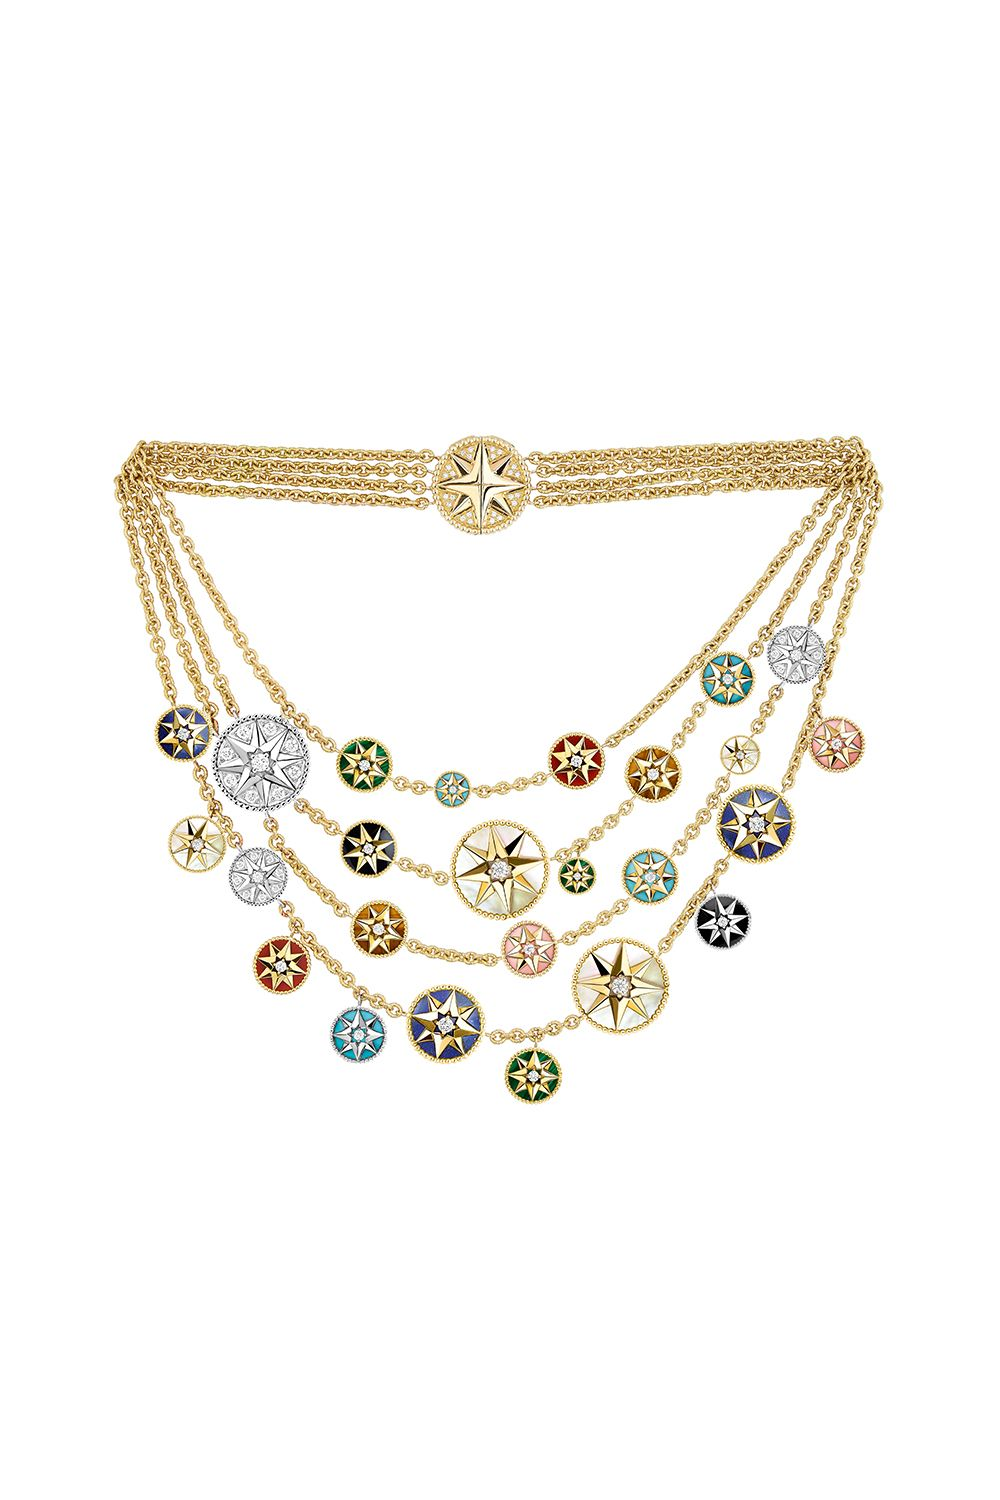 "<p>Dior makes a case against the less-is-more jewelry philosophy with its medallion charm necklace. The motifs on the discs and the natural sway of the necklace when worn are an ode to the ocean, travel, and creation.<span class=""redactor-invisible-space"" data-verified=""redactor"" data-redactor-tag=""span"" data-redactor-class=""redactor-invisible-space""></span></p><p>Dior Rose des Vents Necklace, price upon request, available at select Dior boutiques.</p>"